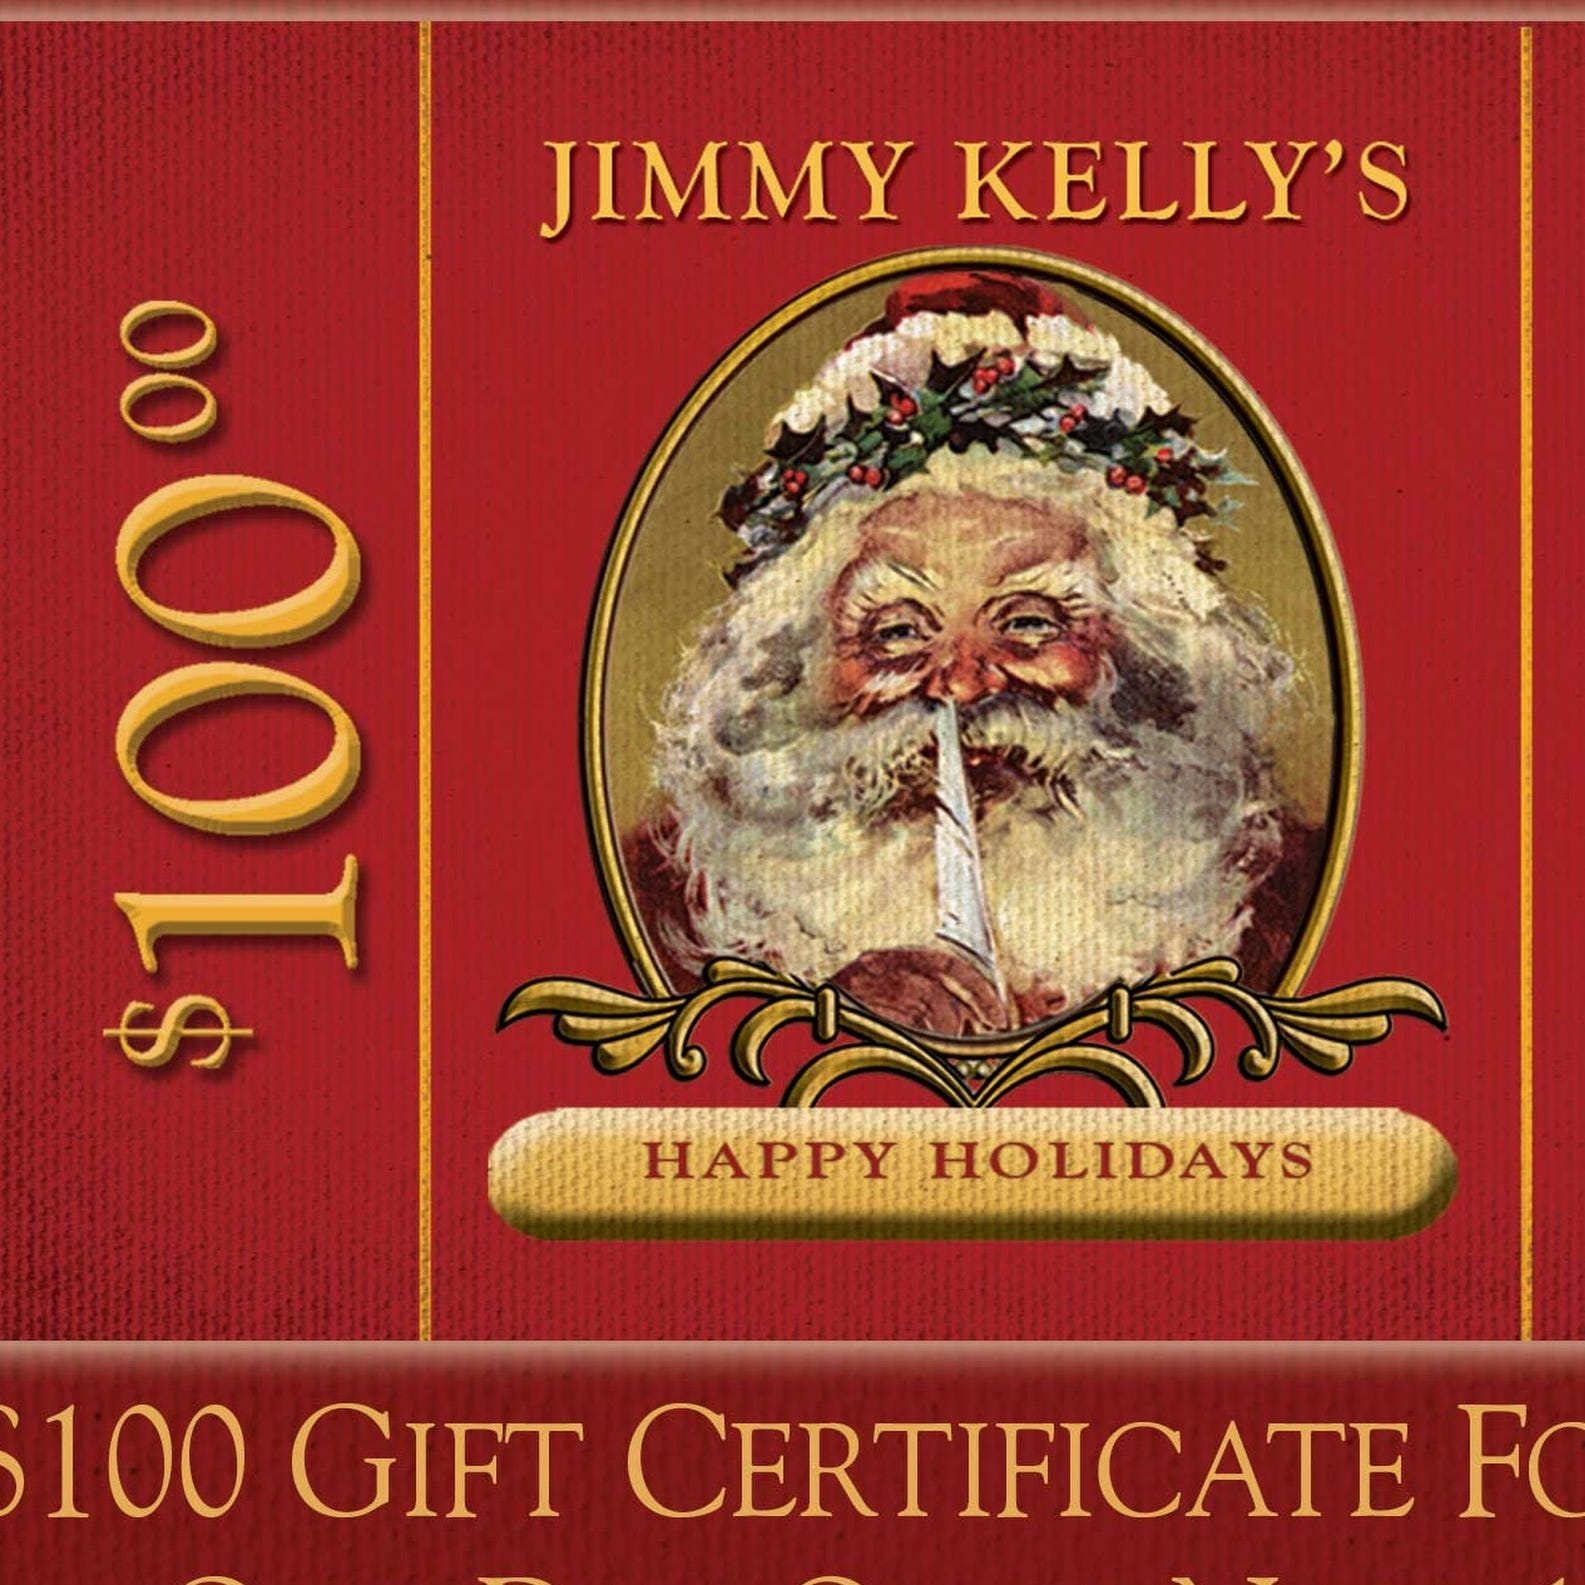 Holiday gift certificate for Jimmy Kelly's...